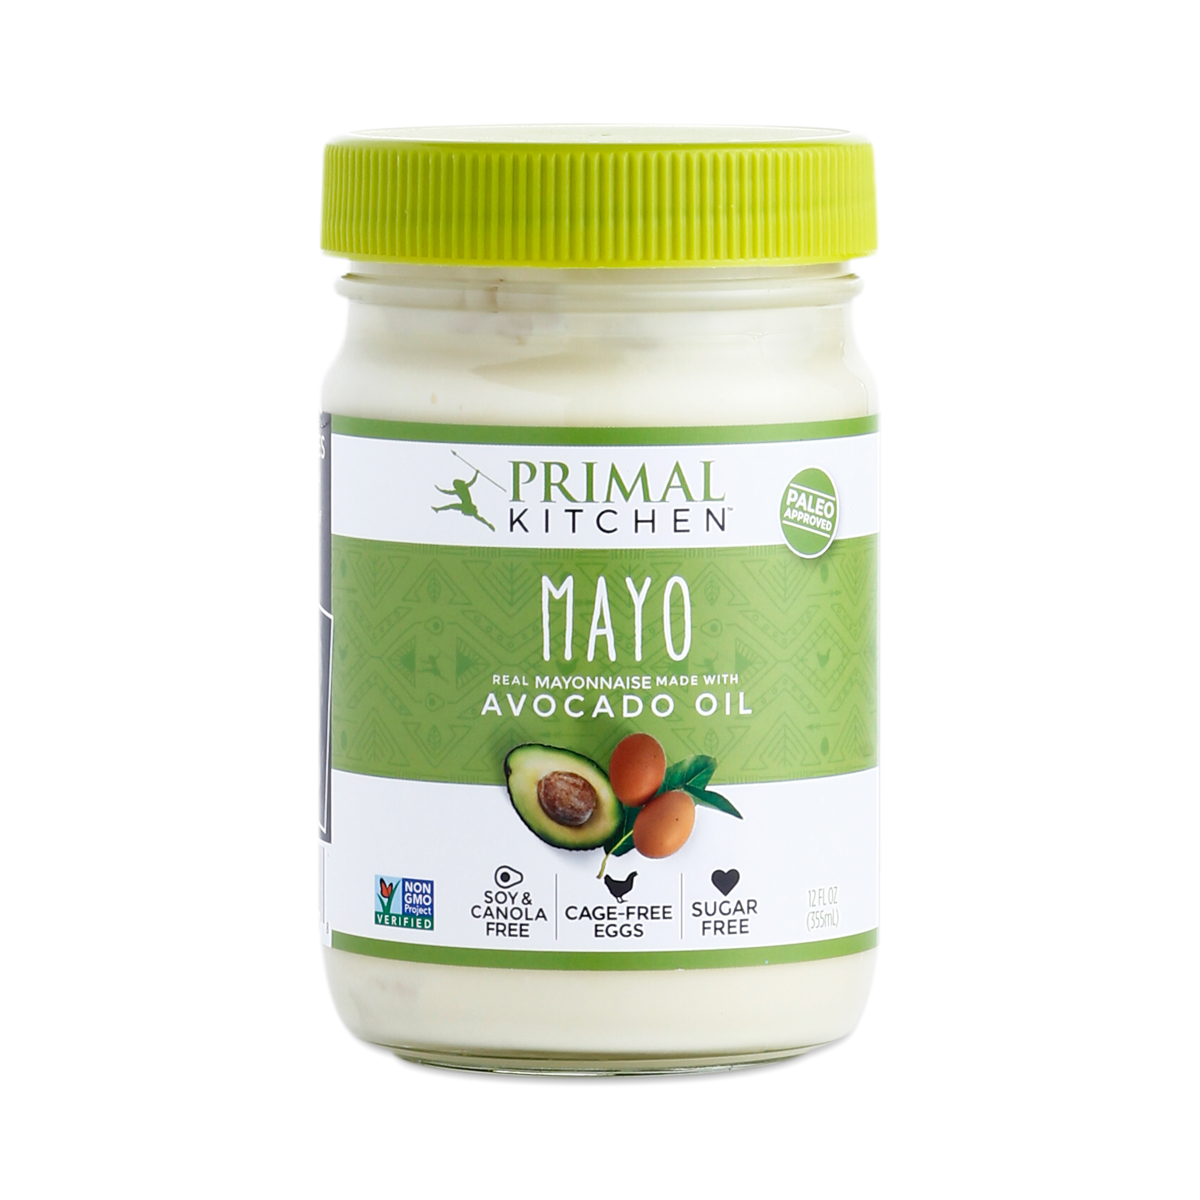 Primal Kitchen Avocado Oil Mayoprimal Kitchen  Thrive Market